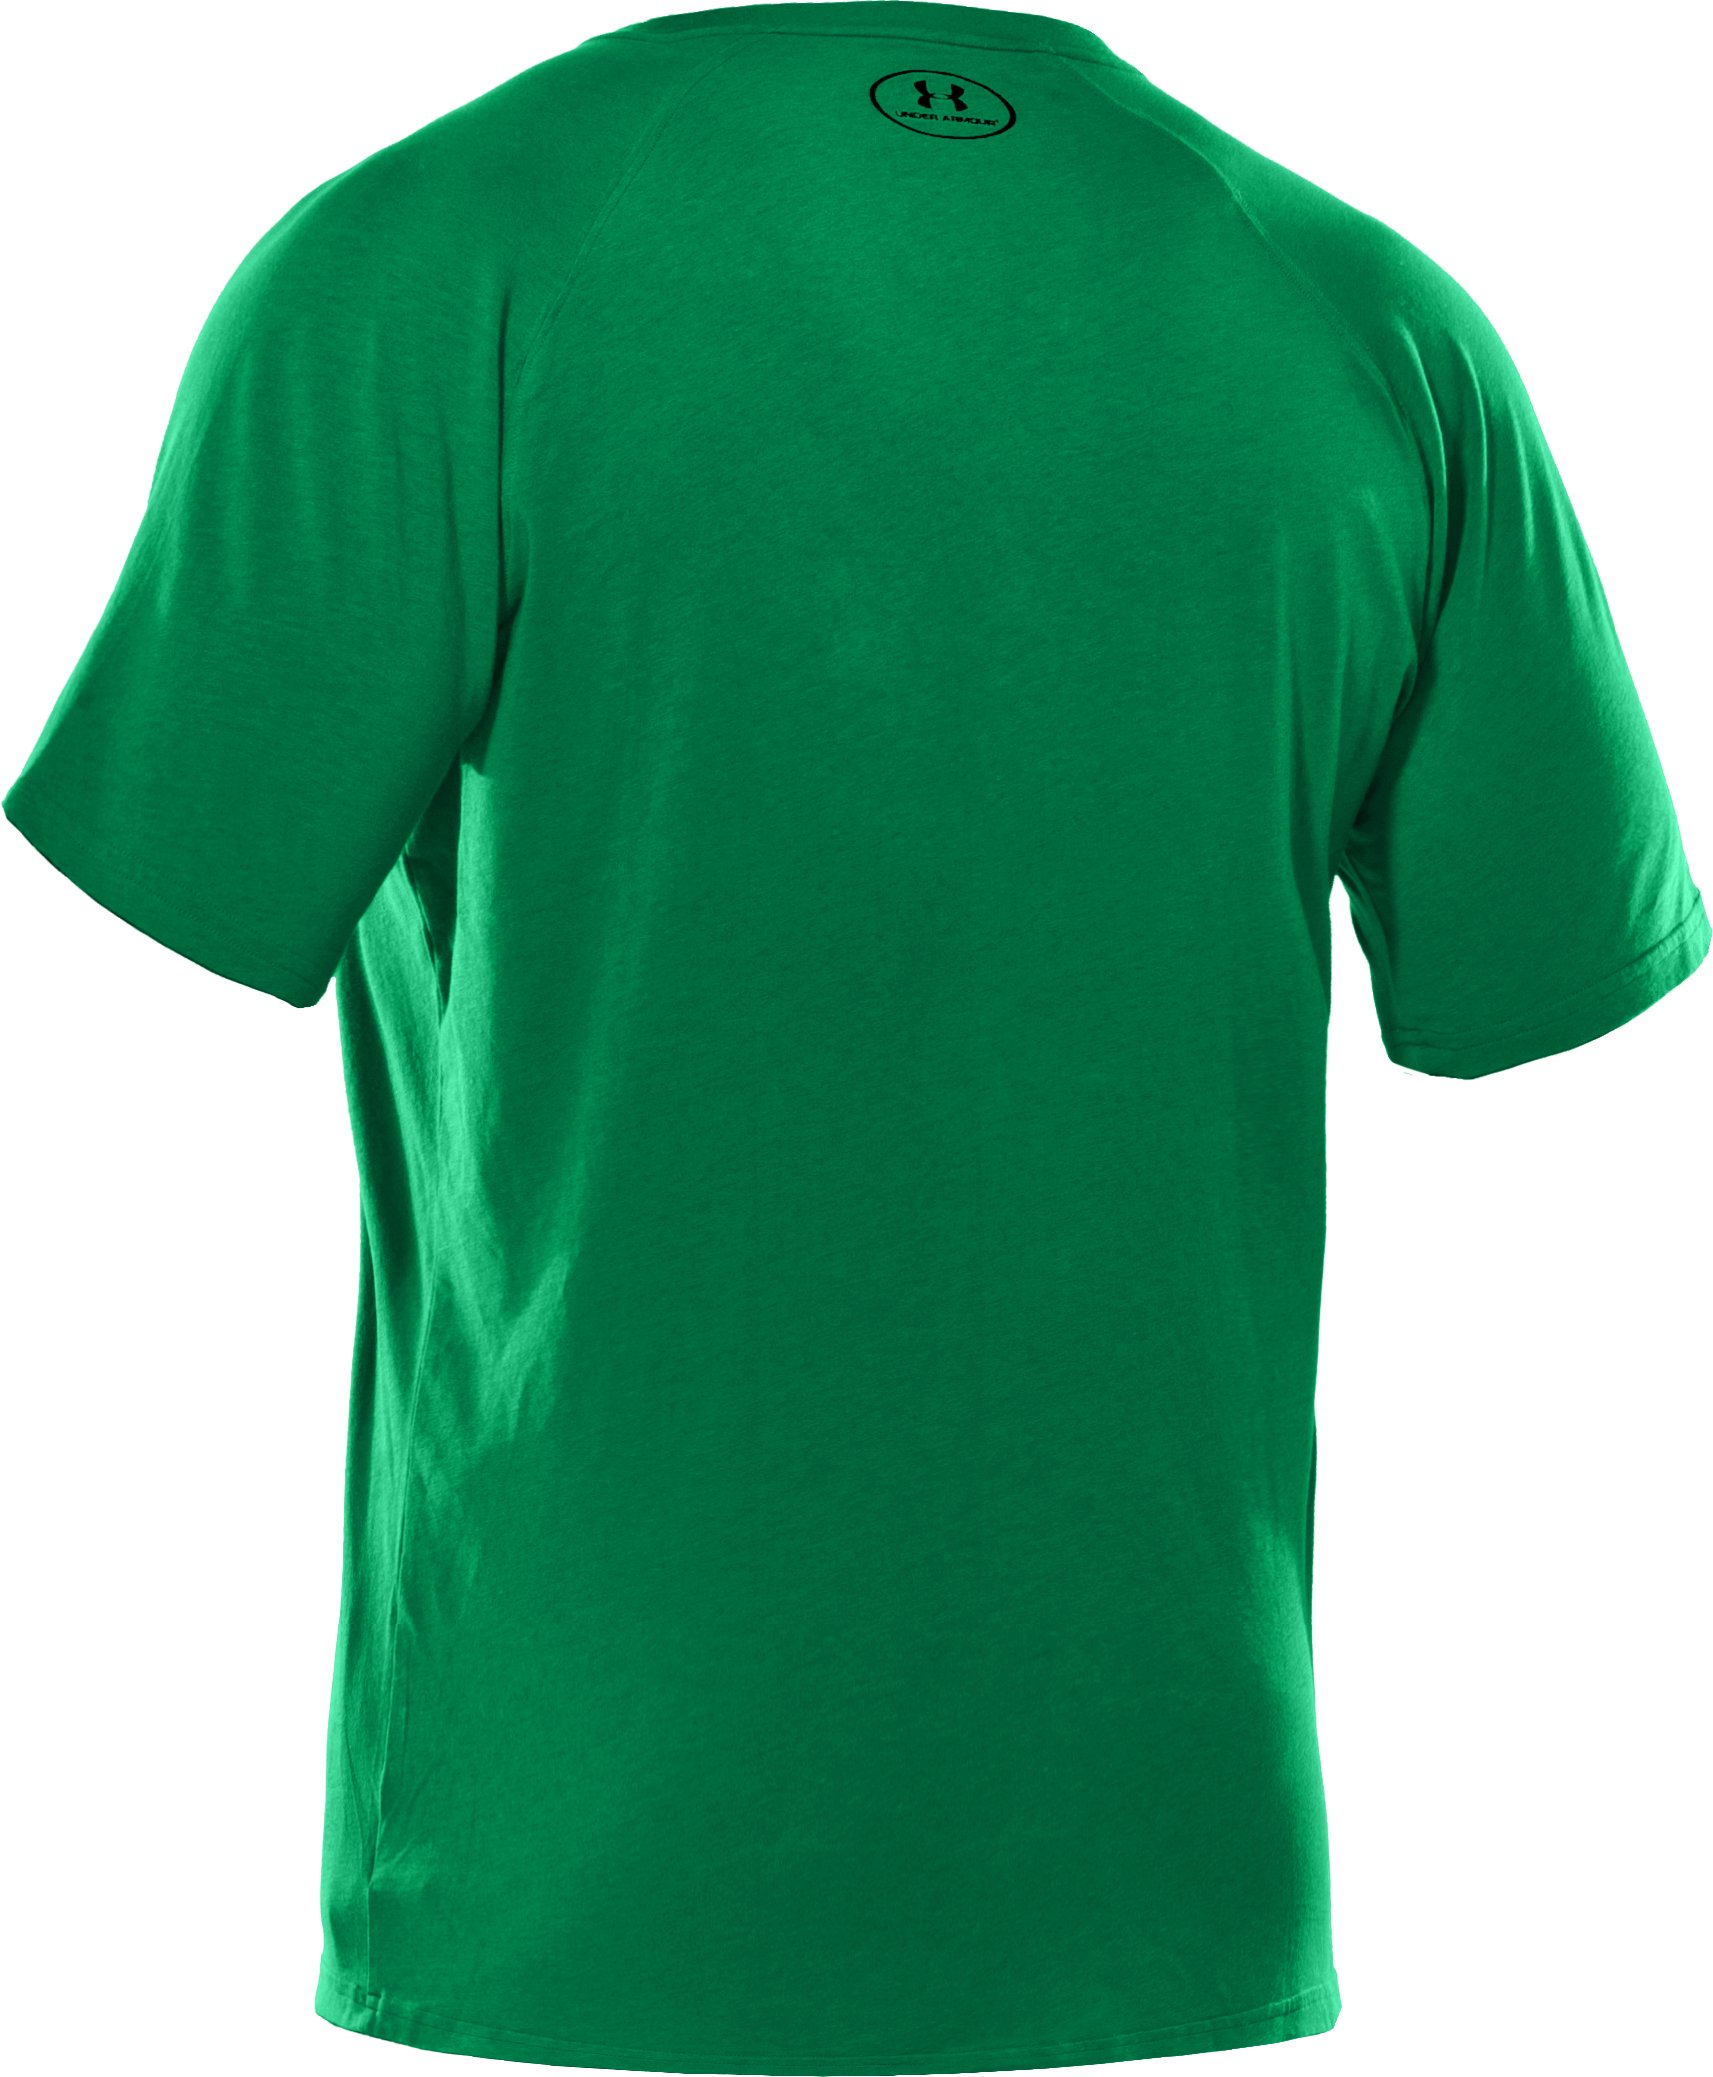 Men's Charged Cotton® V-Neck T-Shirt, Feisty